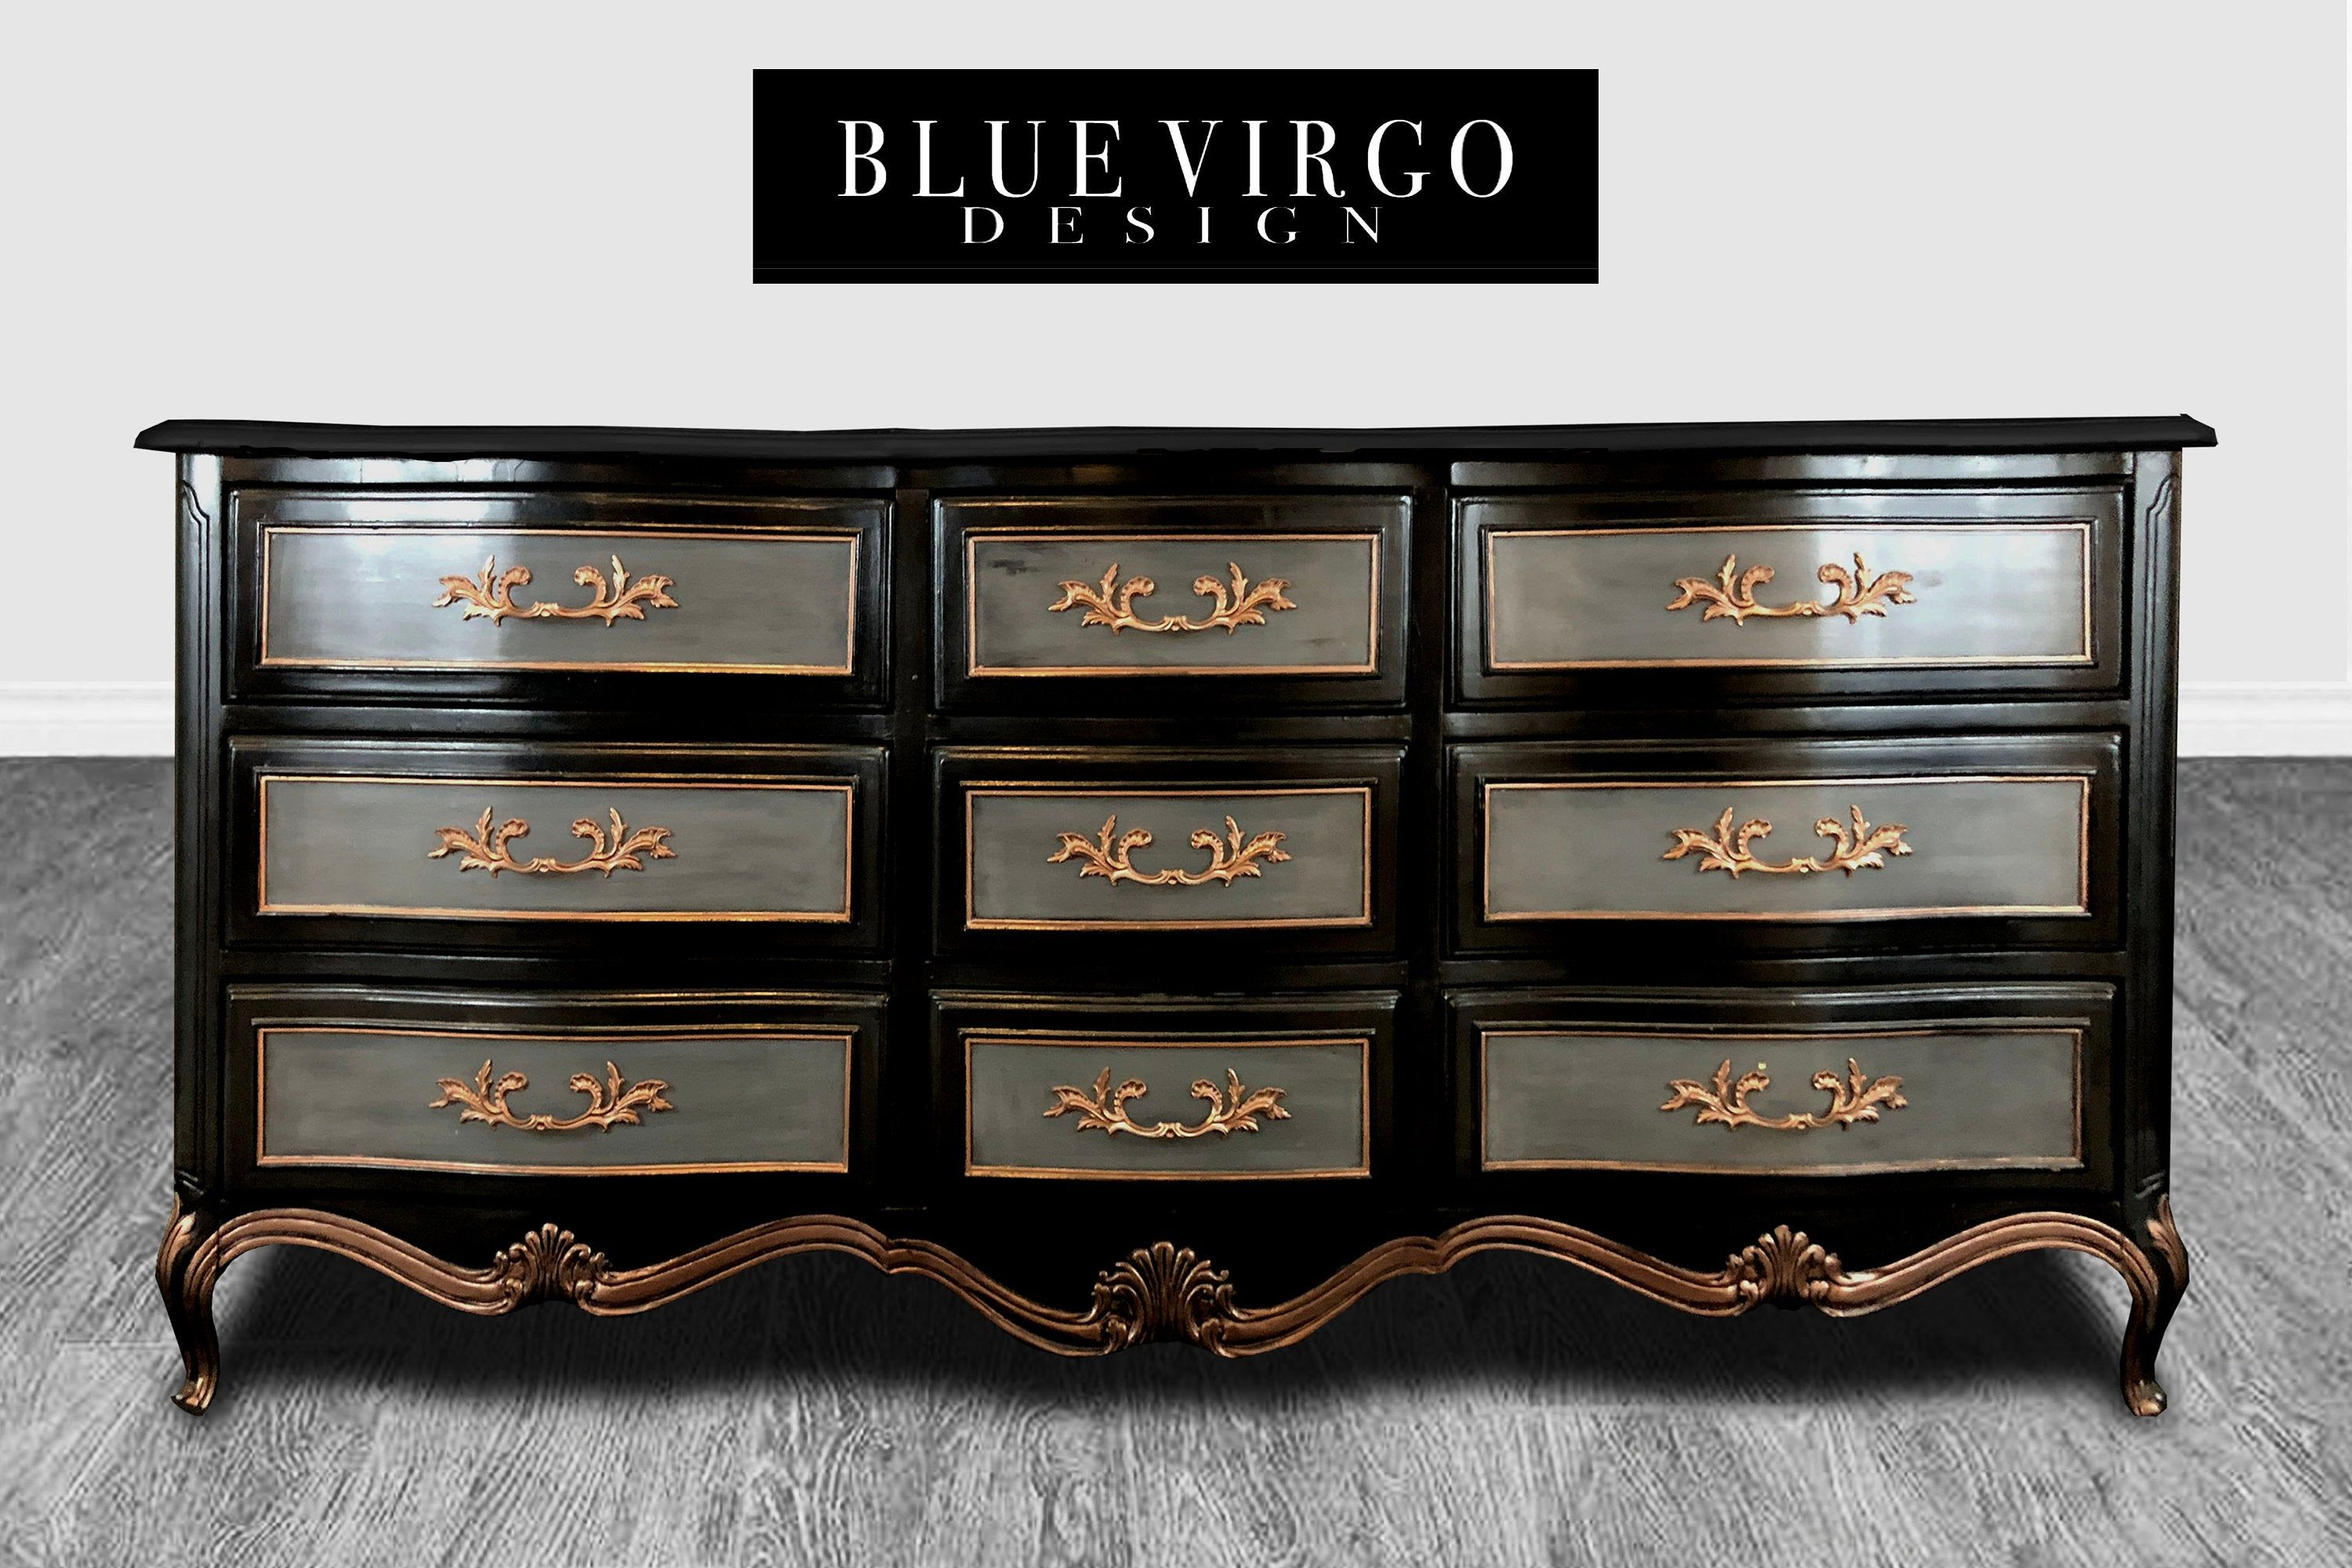 French Country 9 Drawer Black Distressed Dresser Buffet Etsy Black Distressed Dresser Distressed Dresser Distressed [ 2000 x 3000 Pixel ]